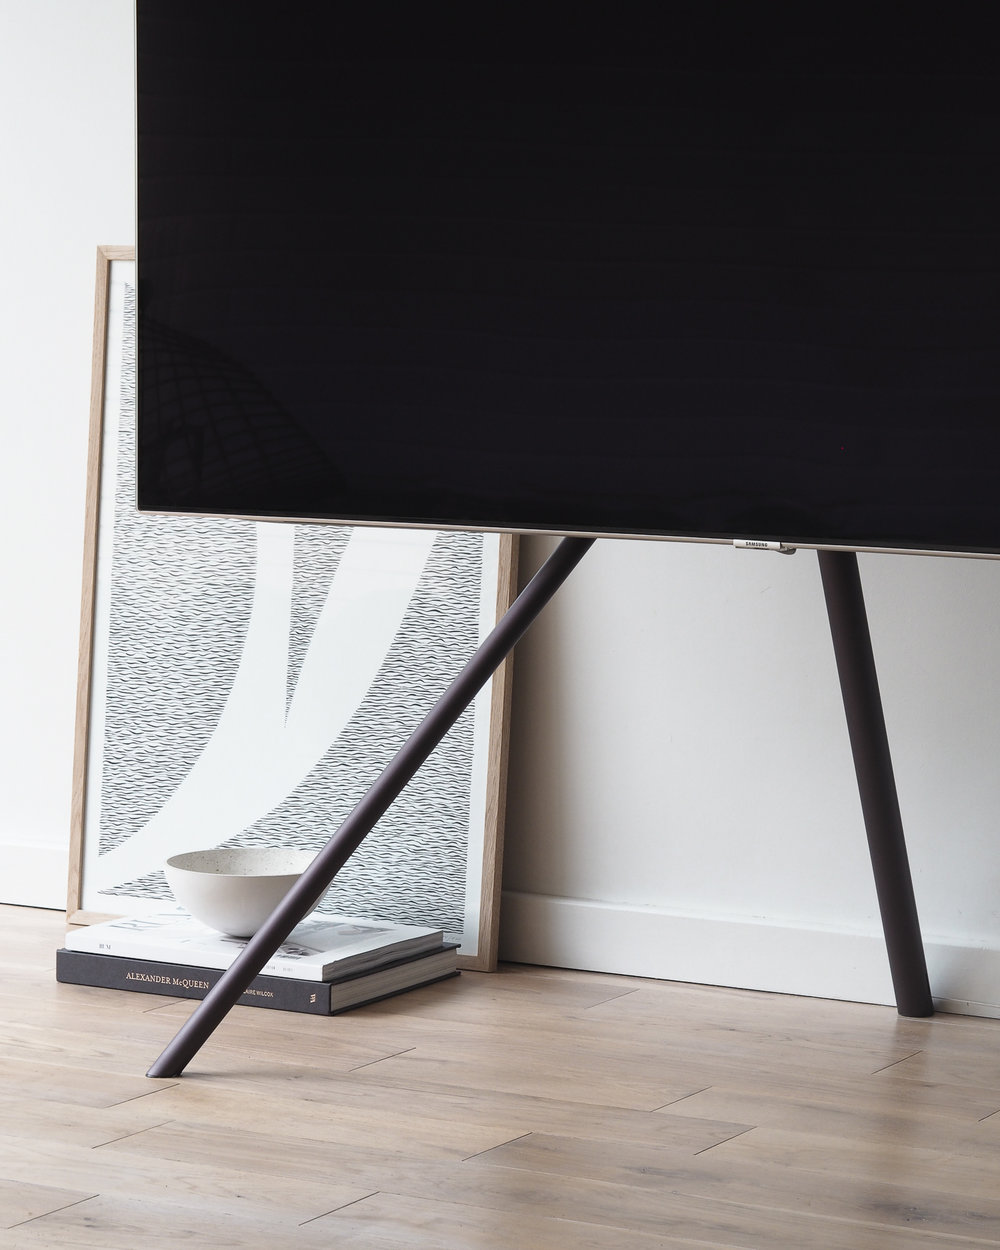 Samsung QLED TV | Design Hunter 4x5-1-9.jpg